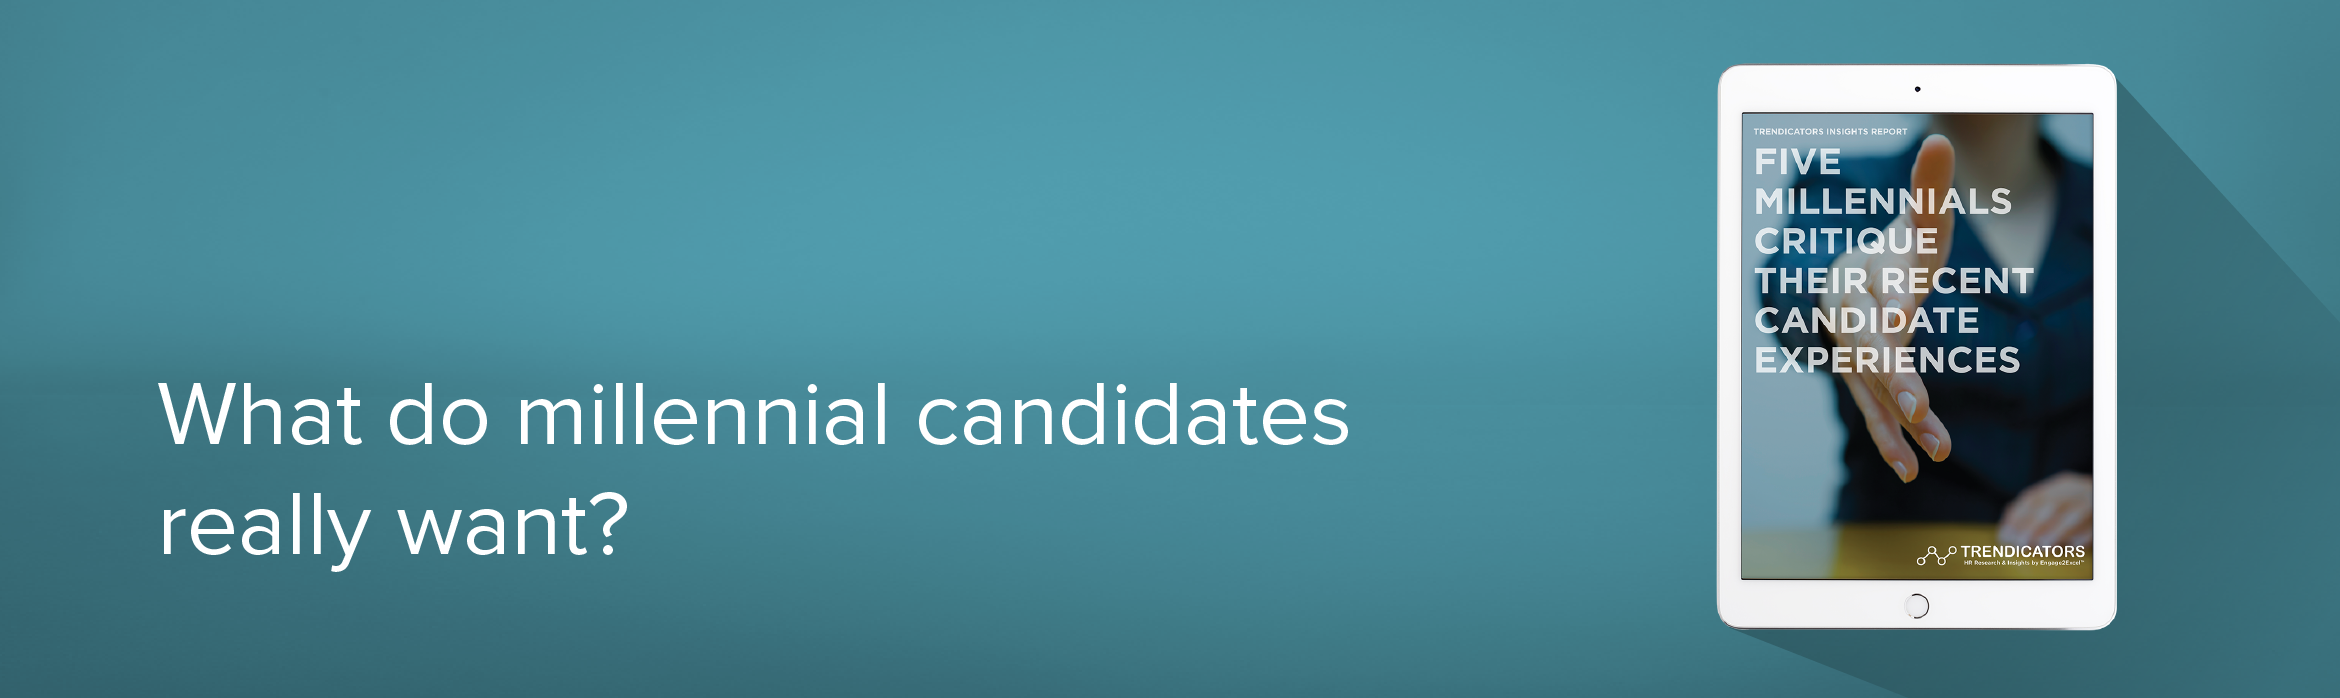 What do millennial candidates really want?